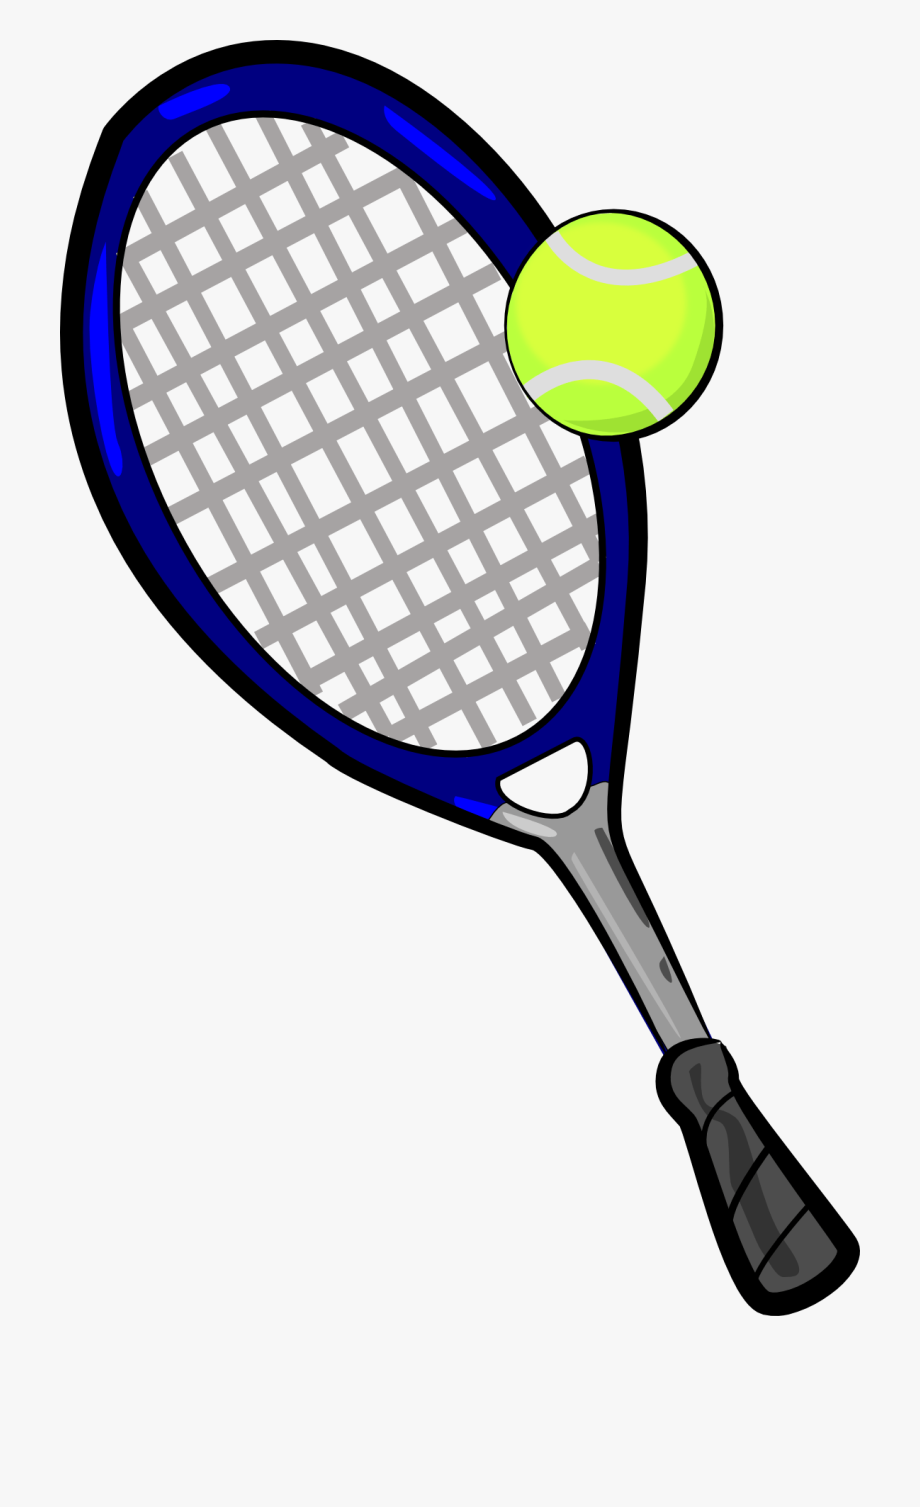 Free tennis cliparts clip art transparent download The Totally Free Clip Art Blog - Tennis Ball And Racket Clip Art ... clip art transparent download